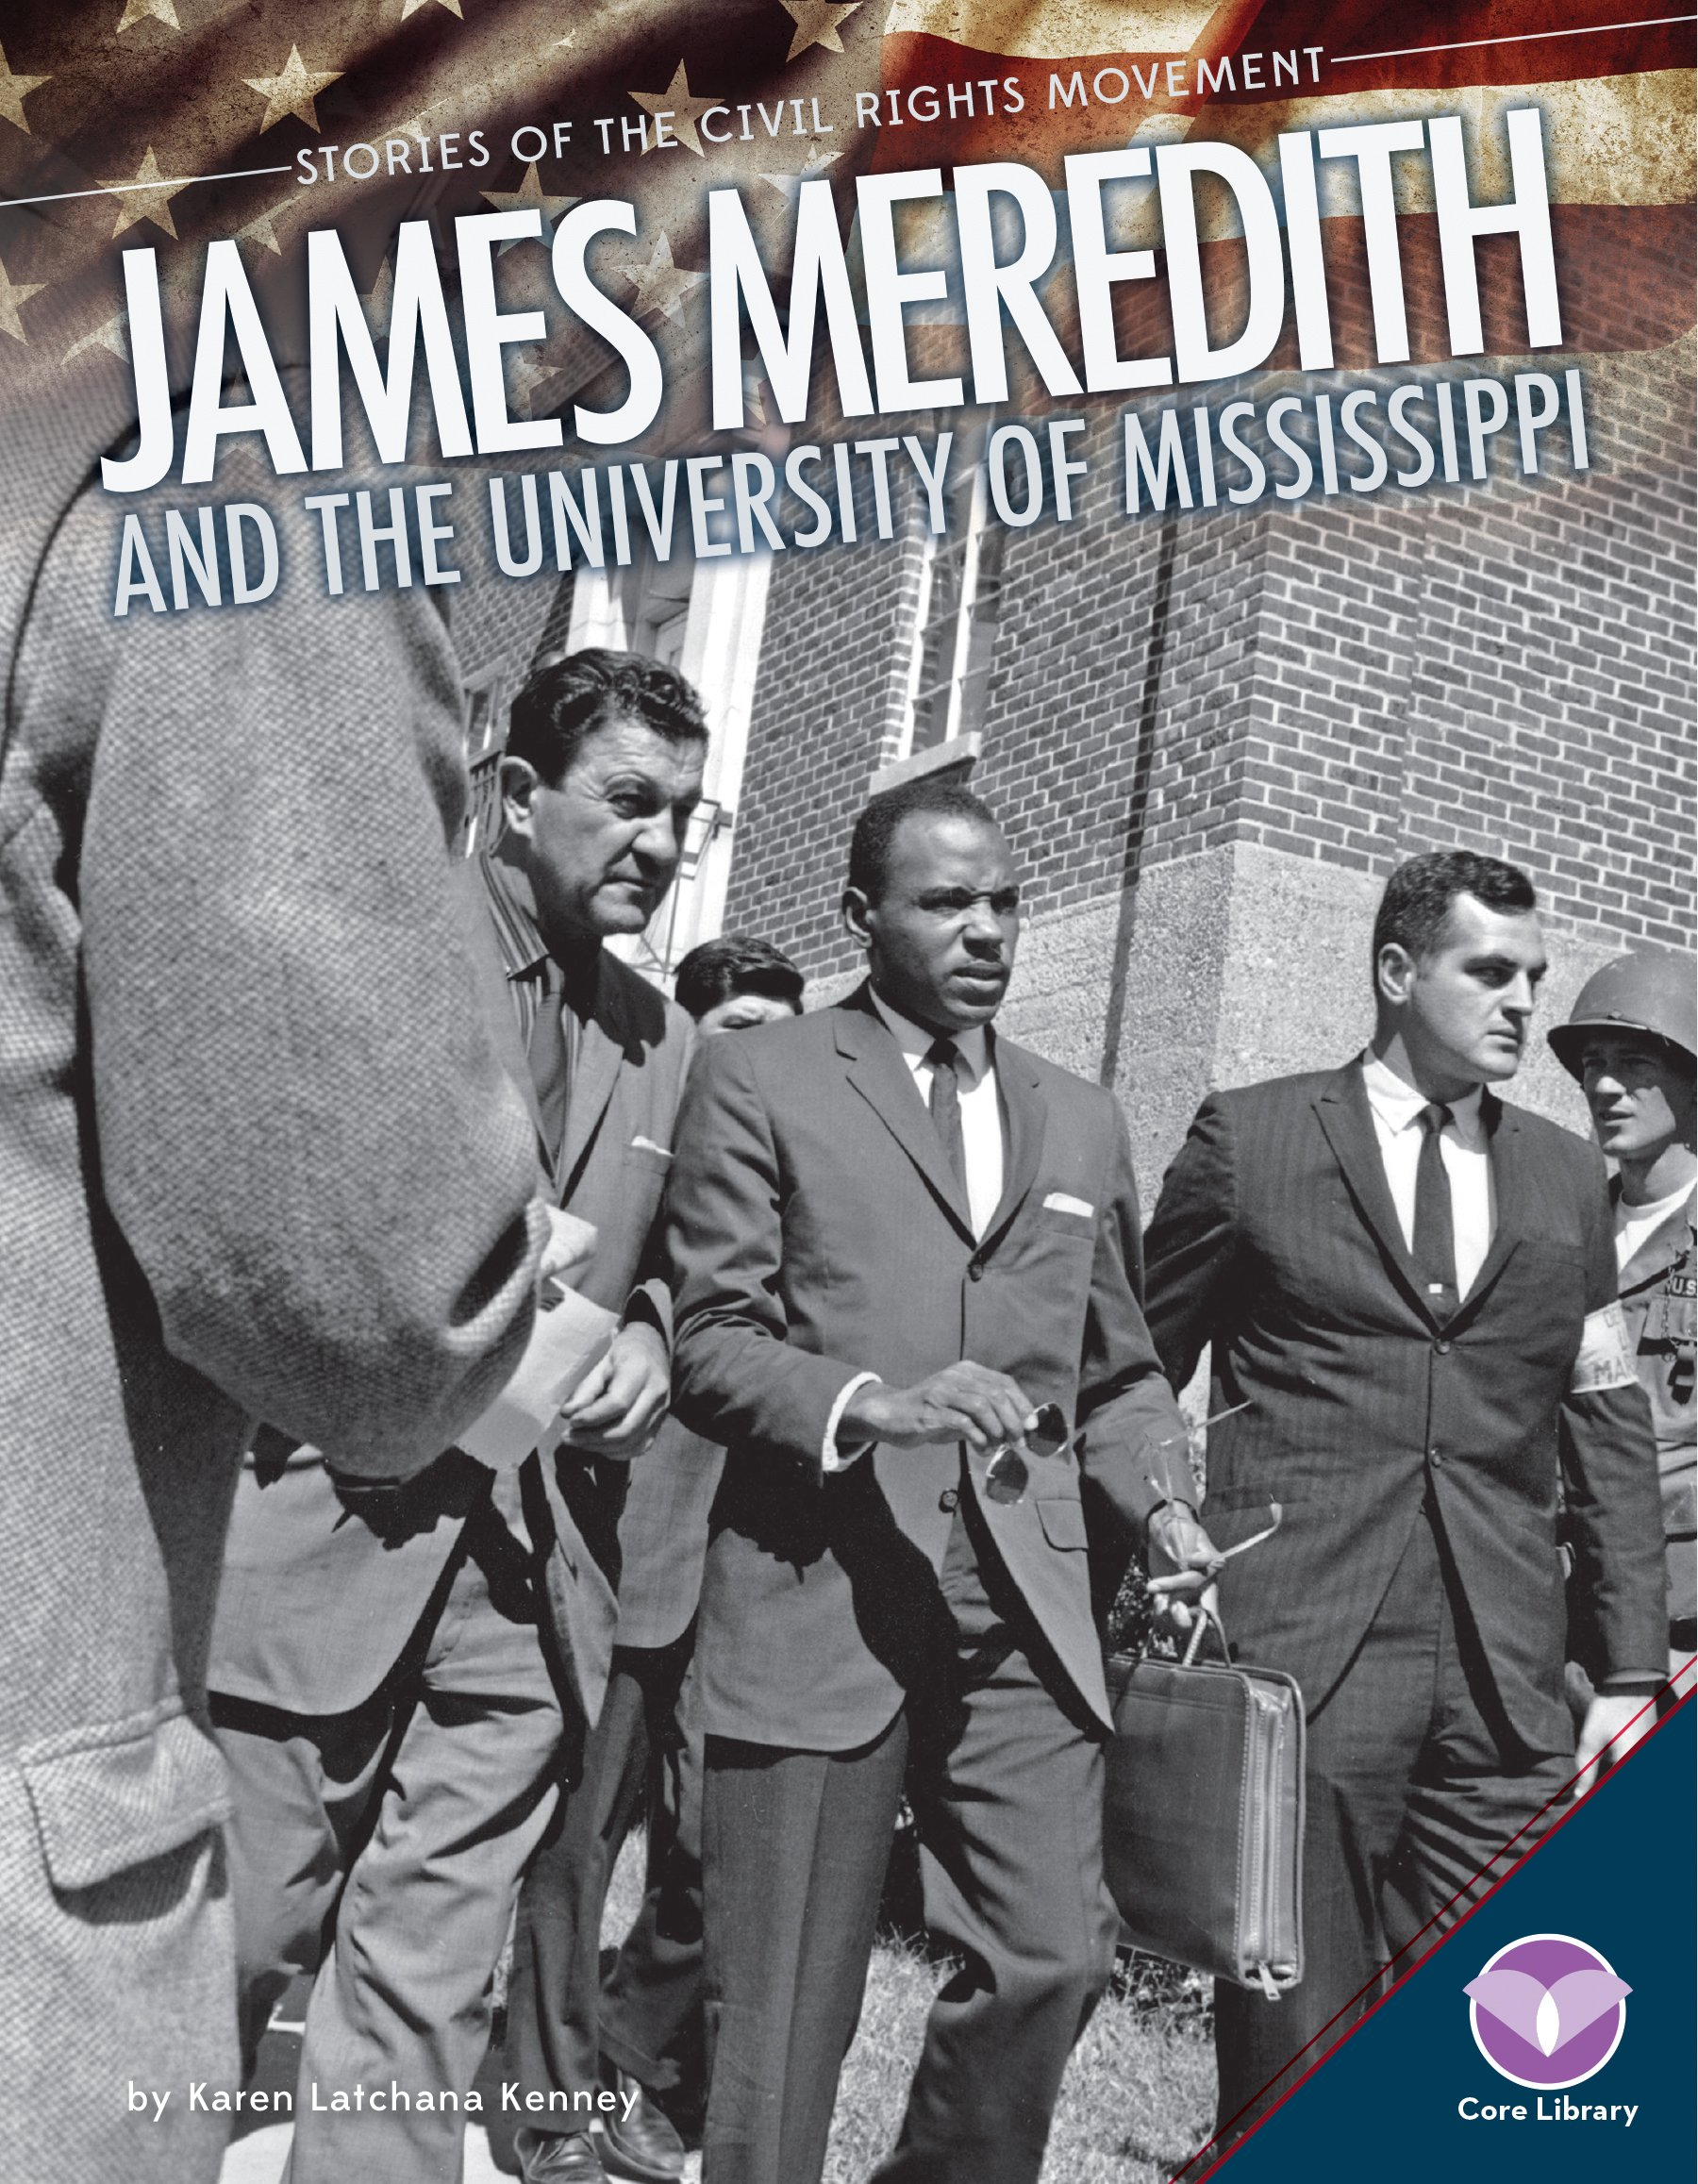 James Meredith and the University of Mississippi (Stories of the Civil Rights Movement)